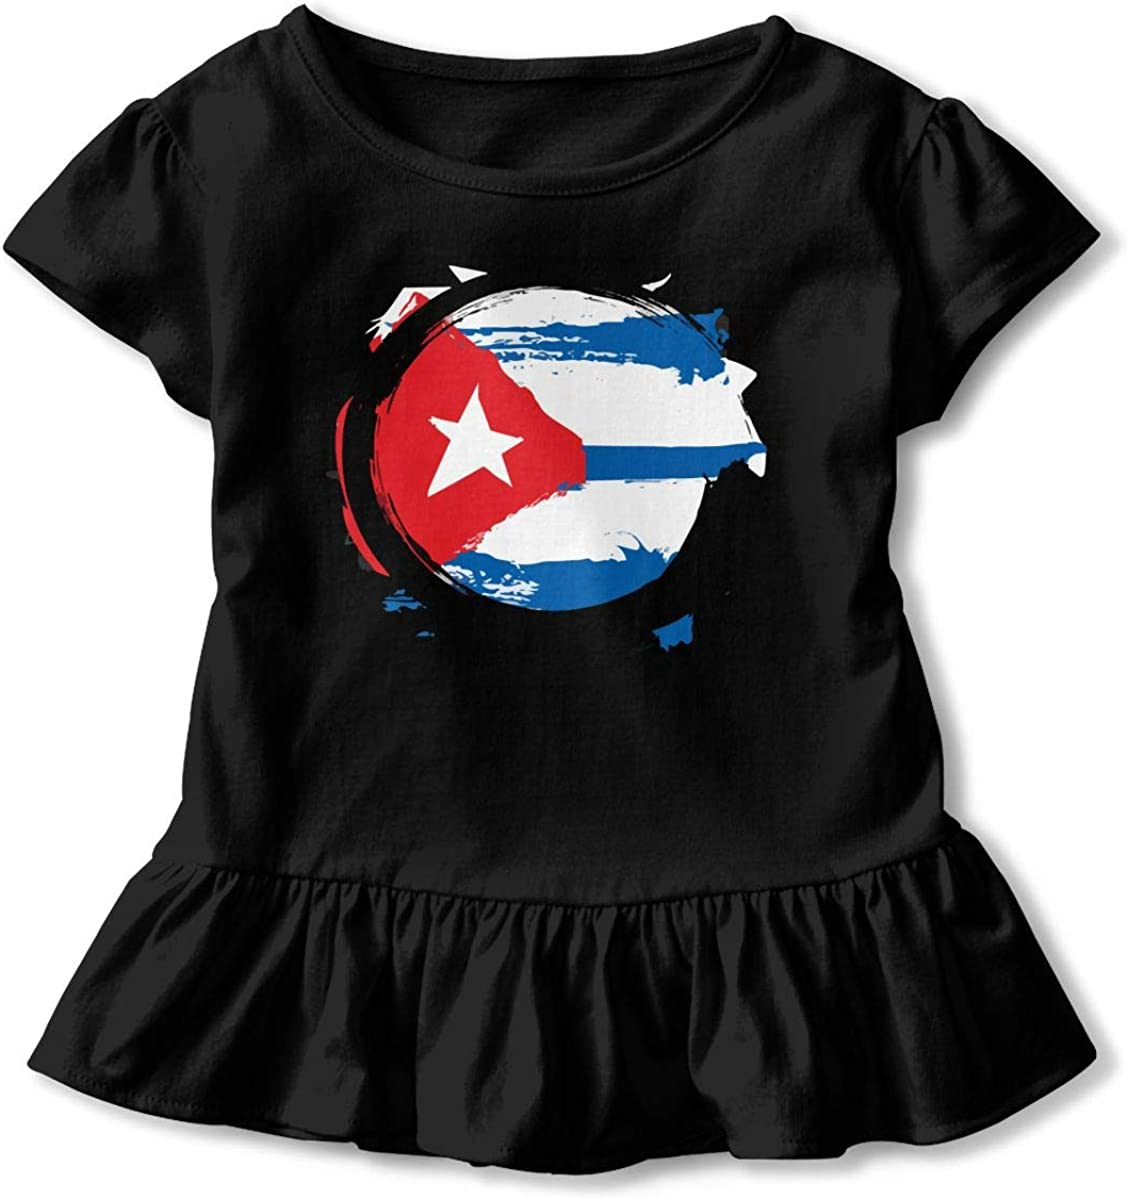 GNKTGBO2O Toddler Girls Cuba Flag Zen 100/% Cotton T Shirts Short Sleeve Ruffle Tee Basic Tops